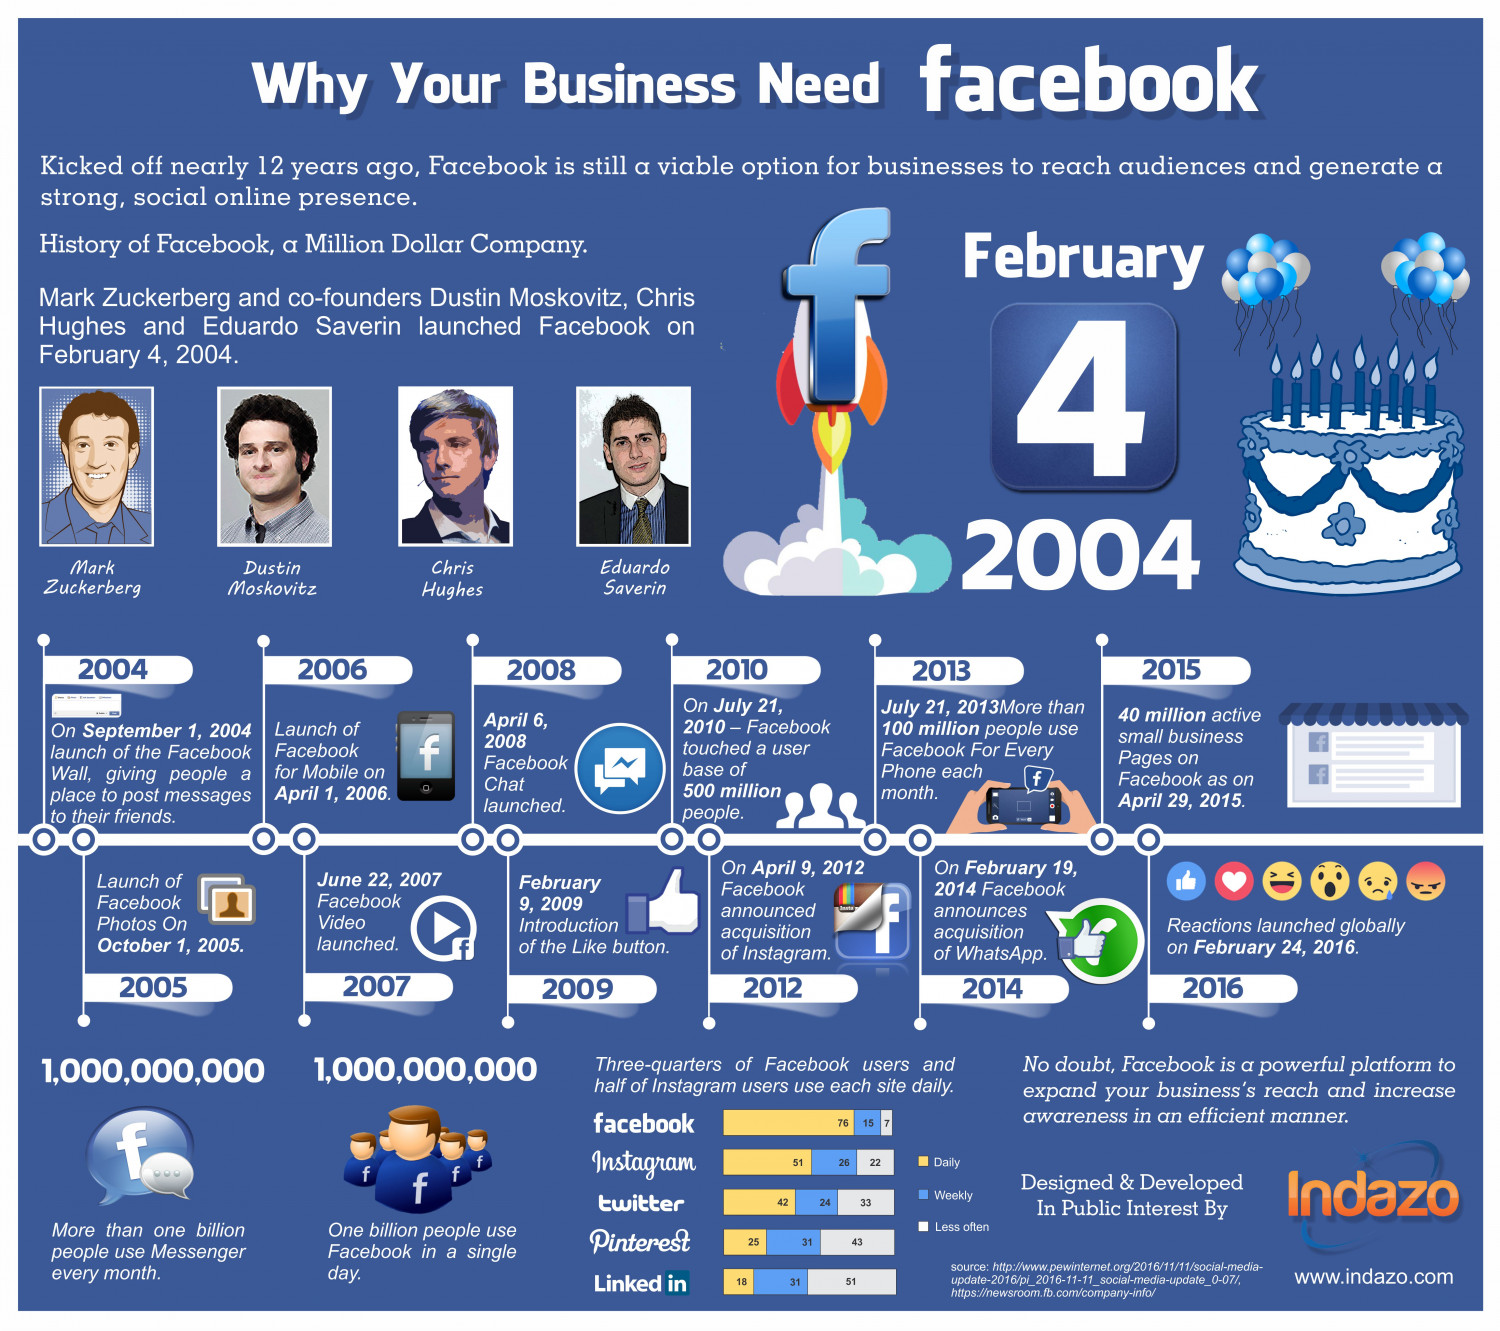 Why Your Business Need Facebook Infographic